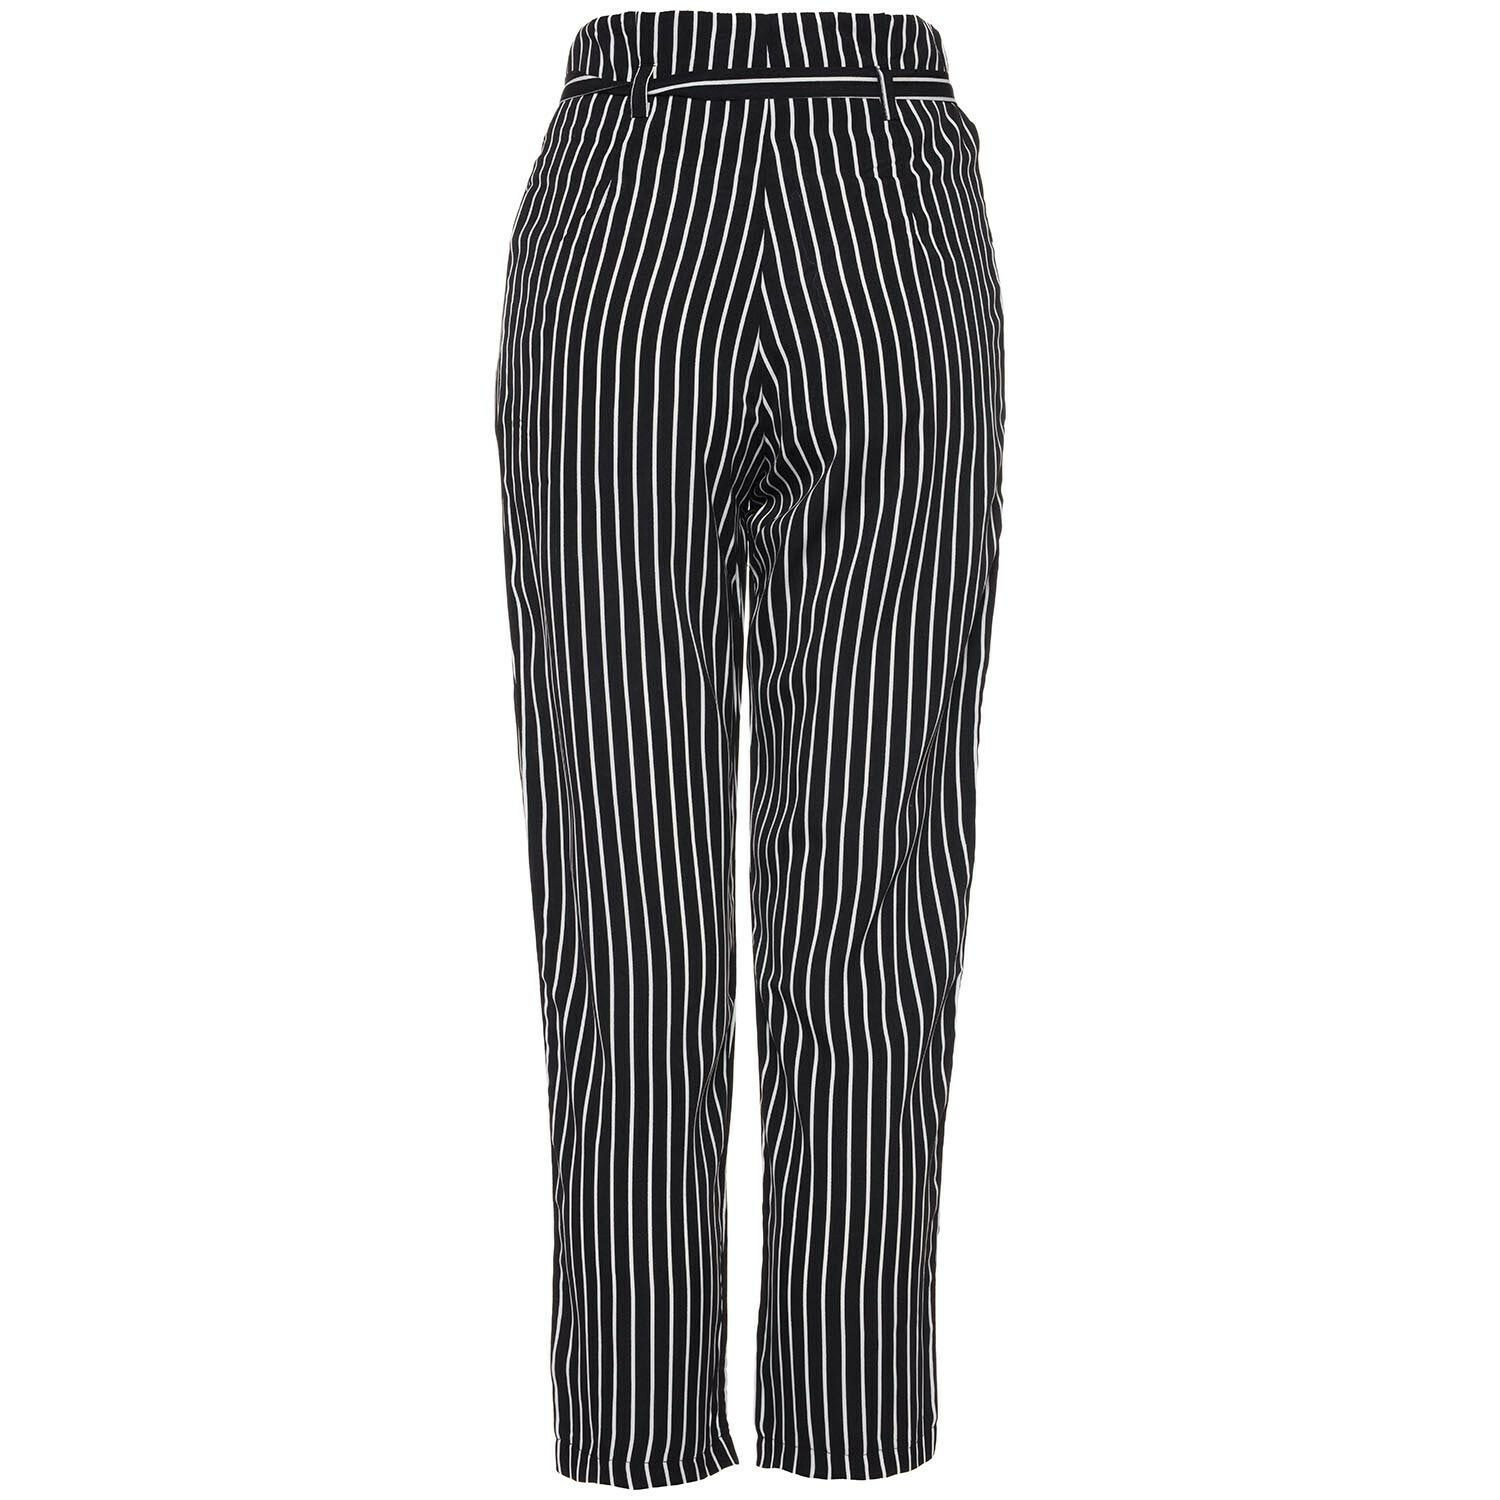 MONOCHROME TIED PANTALON